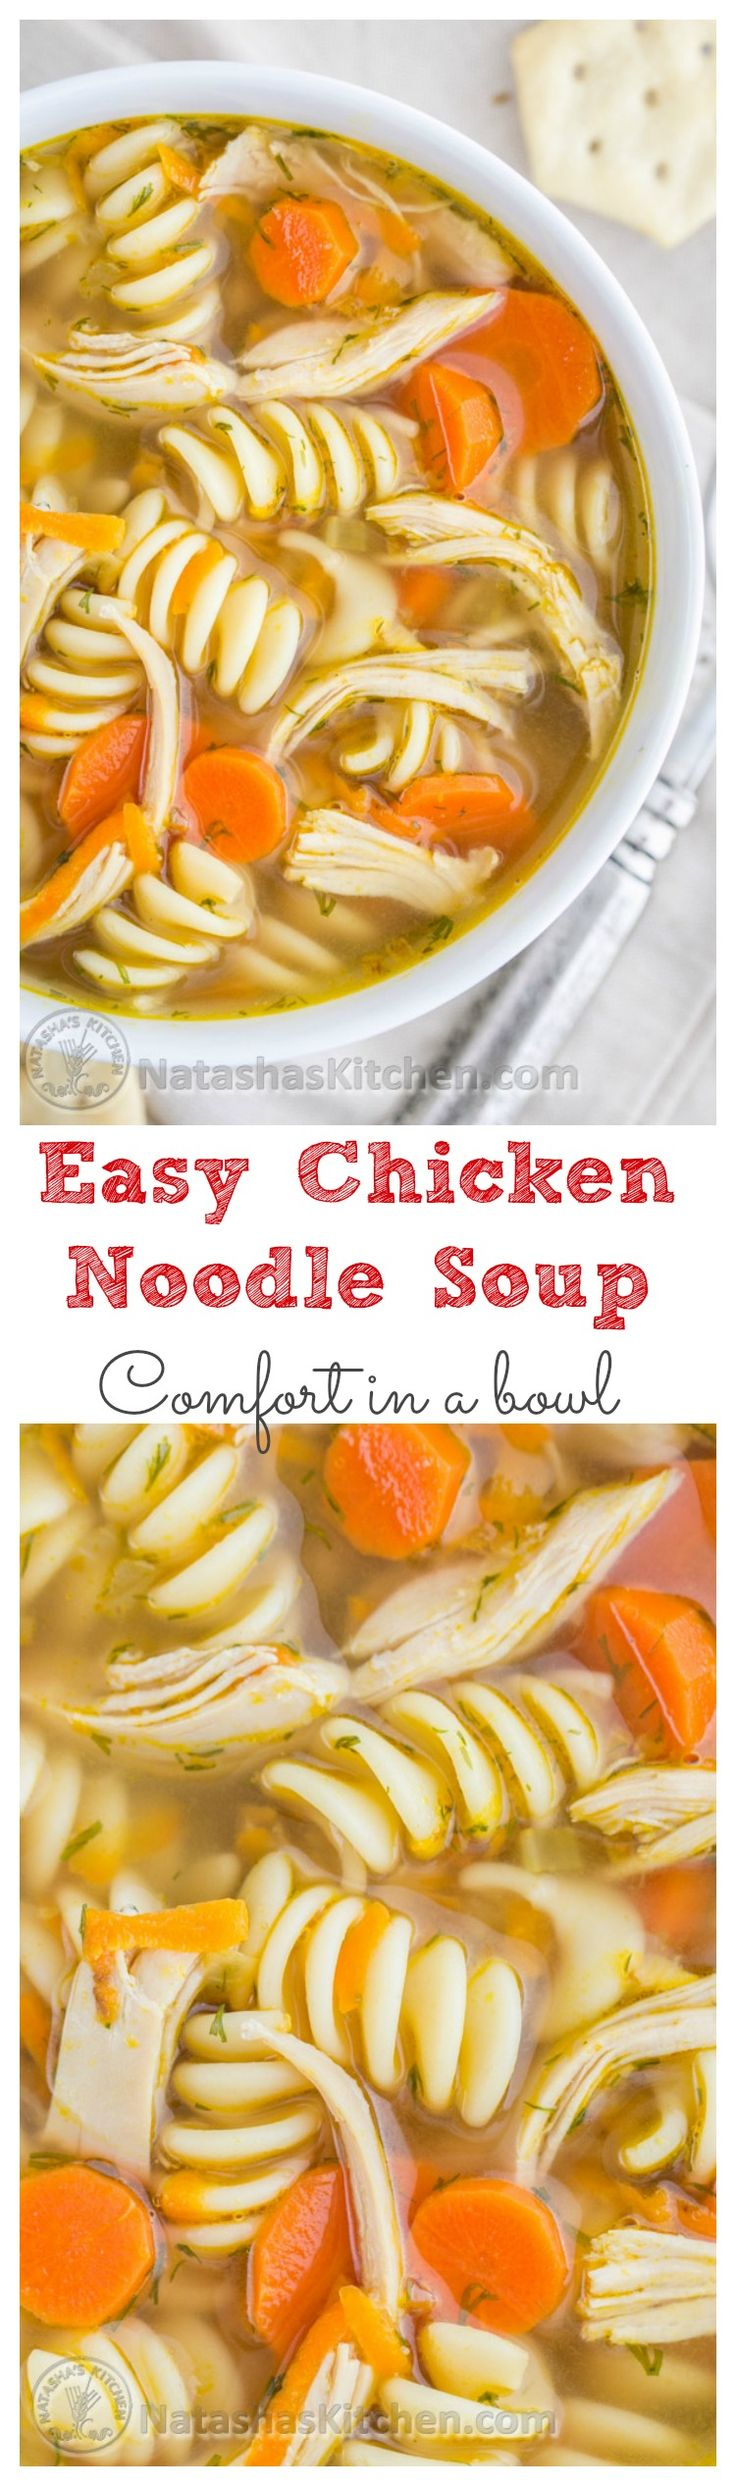 Easy and Delicious Chicken Noodle Soup. The secret is in the chicken thighs!! natashaskitchen #maincourse #recipes #dinner #recipe #easy